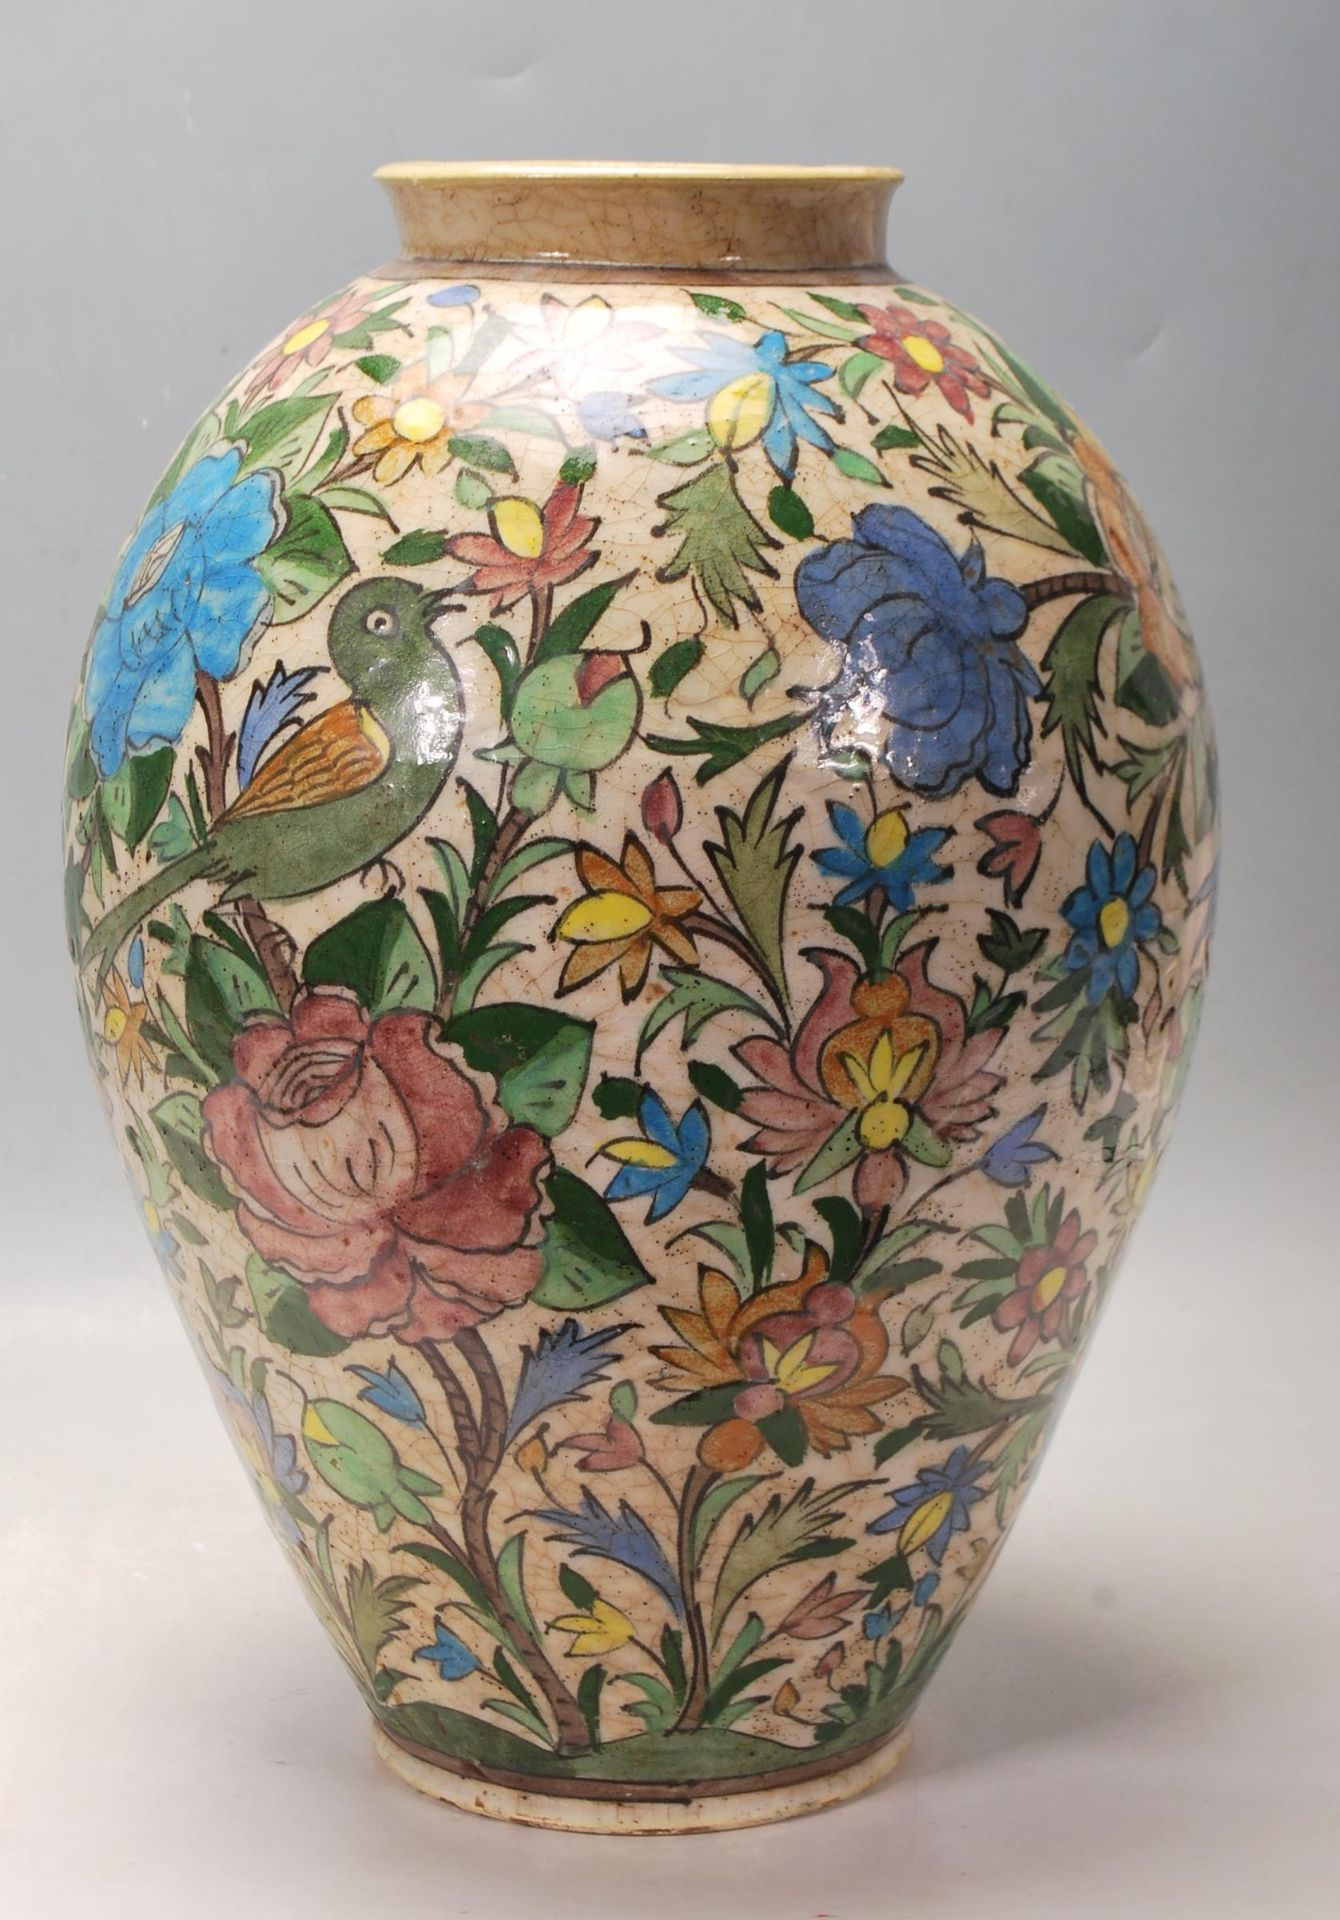 LATE 20TH CENTURY PERSIAN ISLAMIC VASE WITH POLYCHROME DECORATION